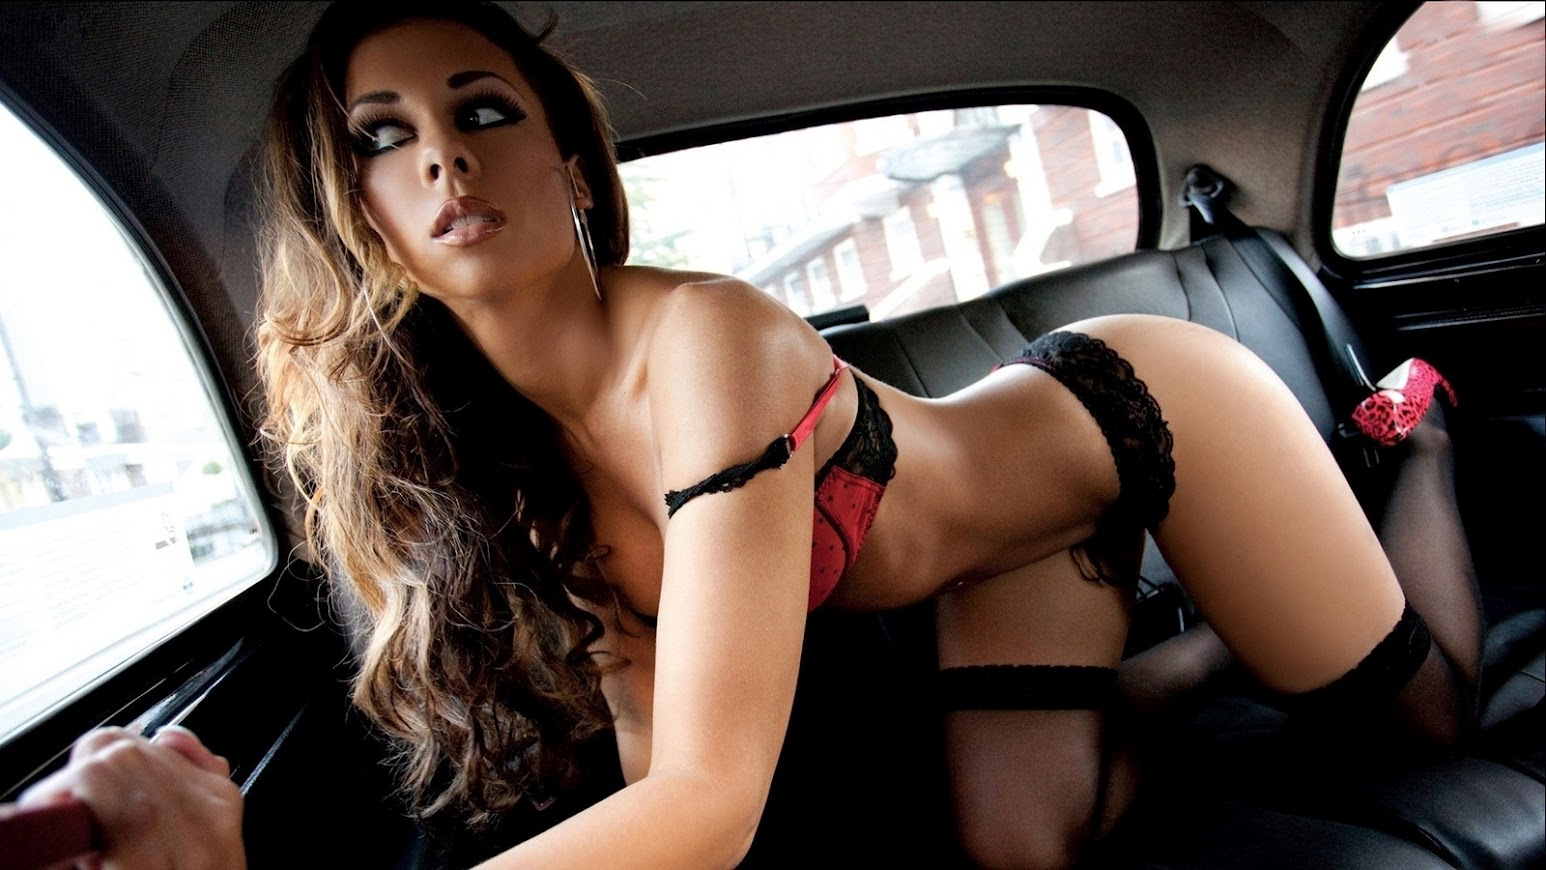 Sexy Lingerie in a Car